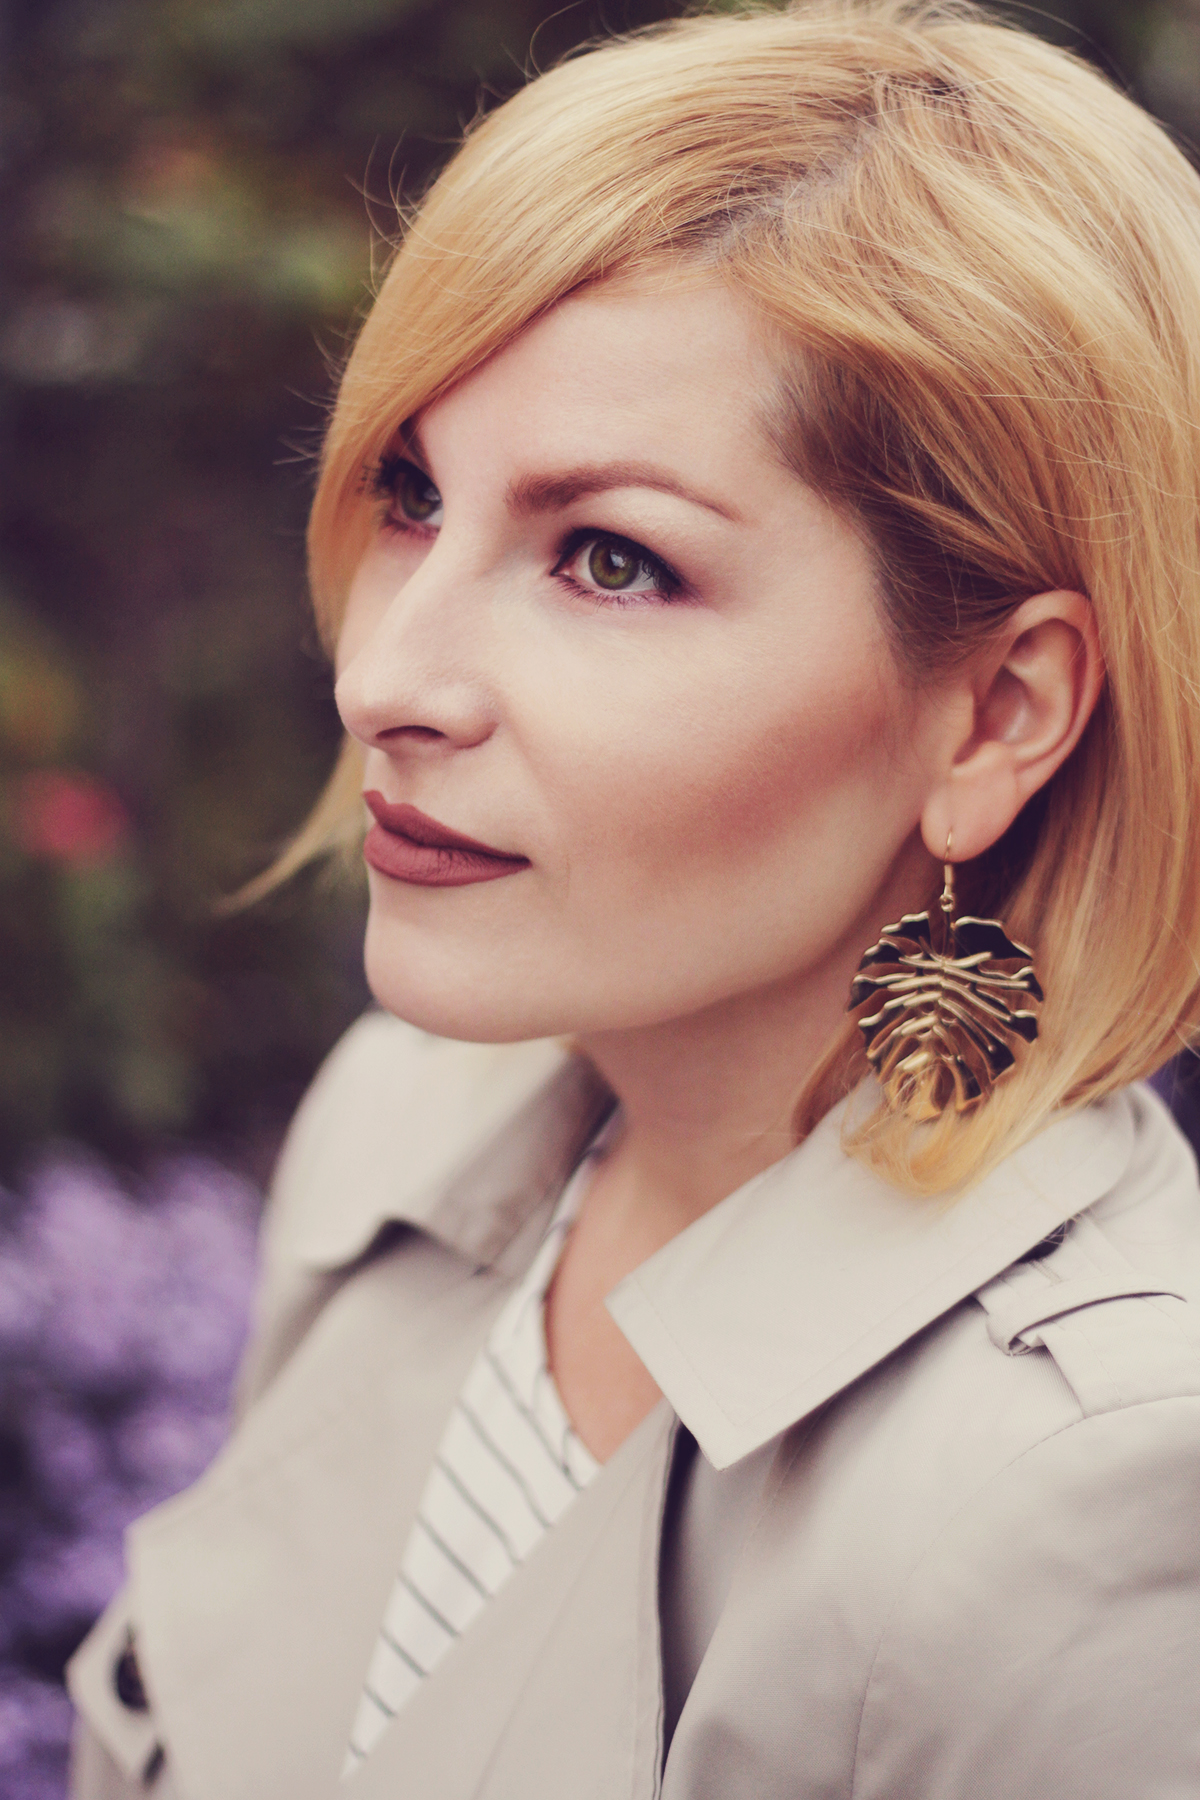 matte lips, tropical leaf earrings, short trench, classic burgundy make-up